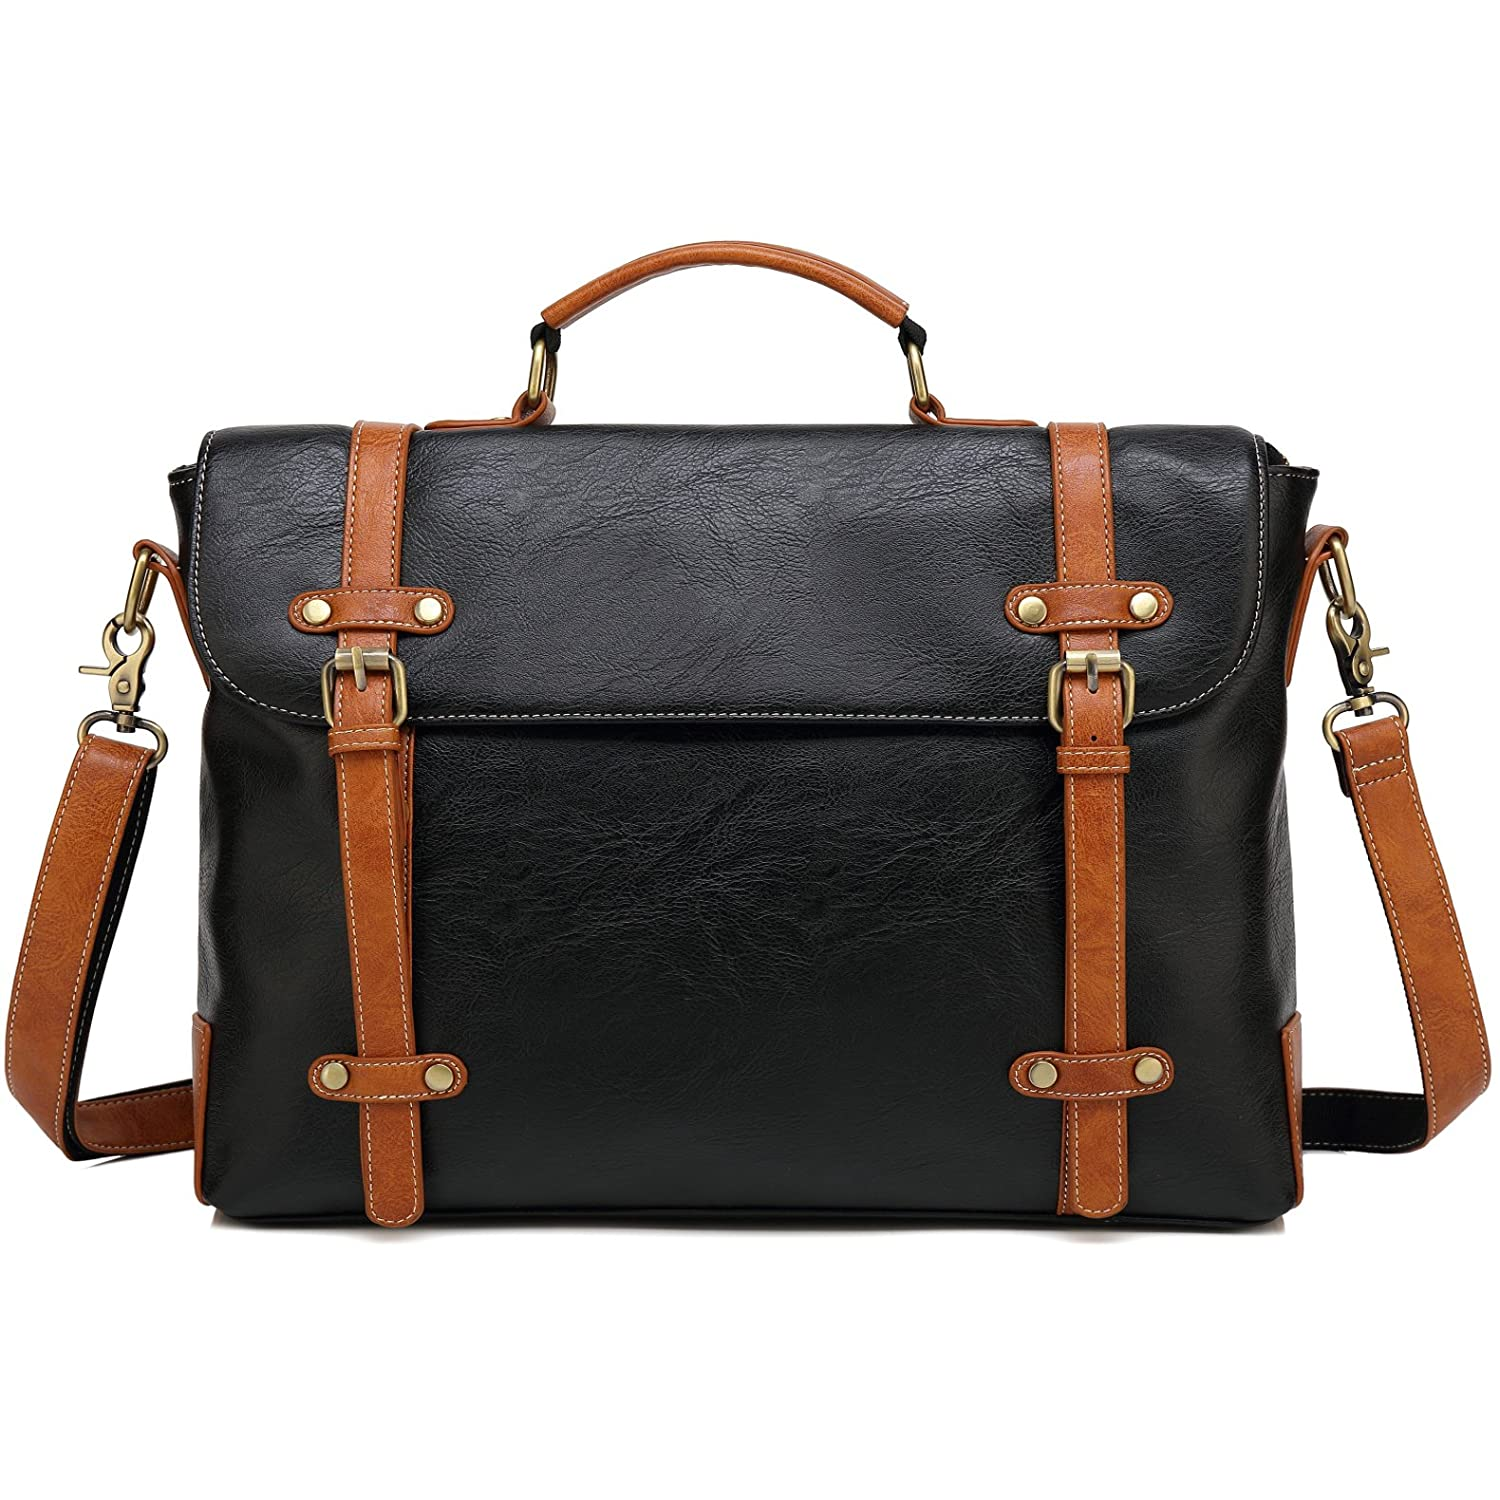 Kenox Vintage Pu Leather Laptop Briefcase Messenger Bag Satchel Shoulder Bag Kbag0589-black